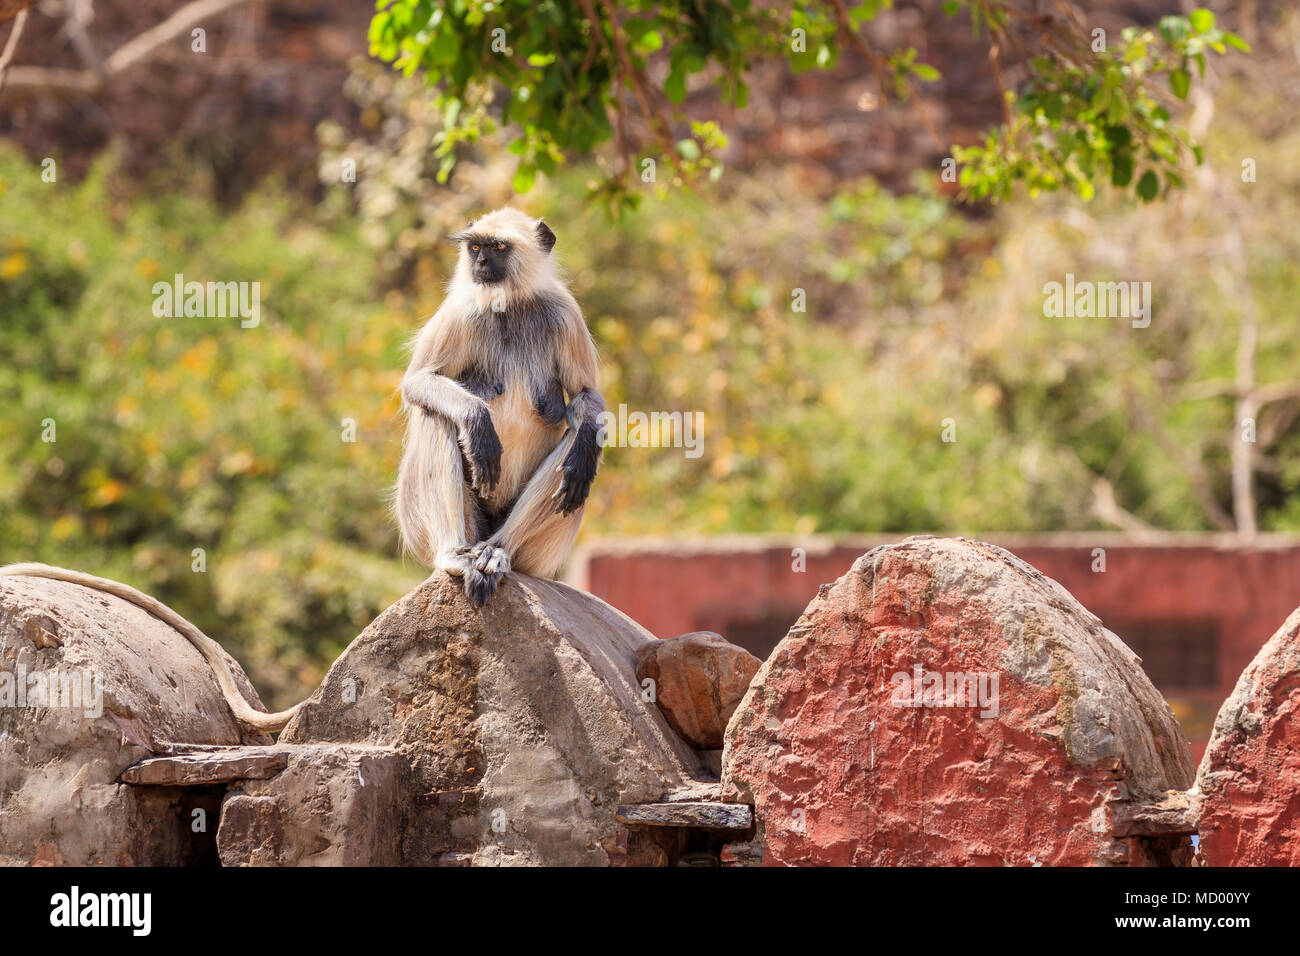 Grey langur (Semnopithecus entellus), an old world monkey, sits and relaxes on a wall in Ranthambore National Park, Rajasthan, northern India - Stock Image